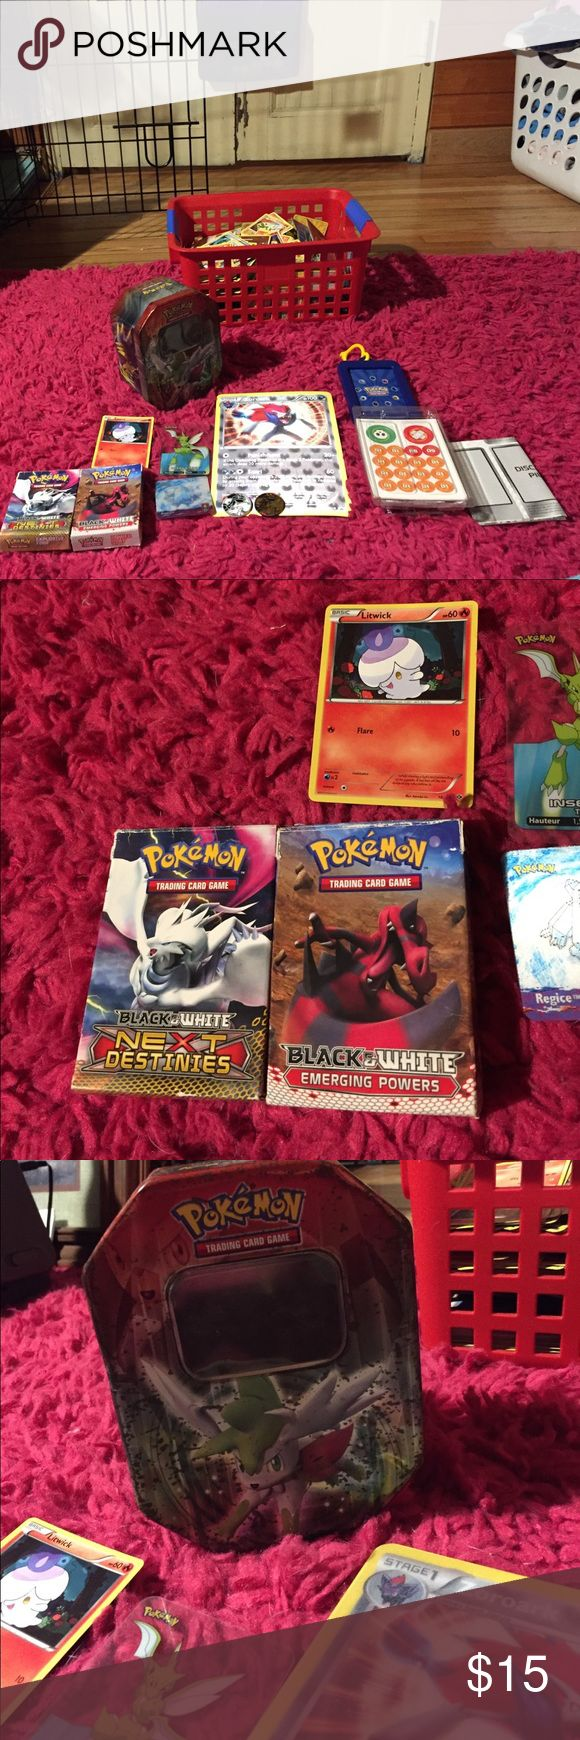 Pokémon Card Lot- Items Two Card Boxes, 3 Pokémon cards, 1 giant Pokémon card, 2 Coins, Play Tokens, 2 Play Papers Pokemon Other